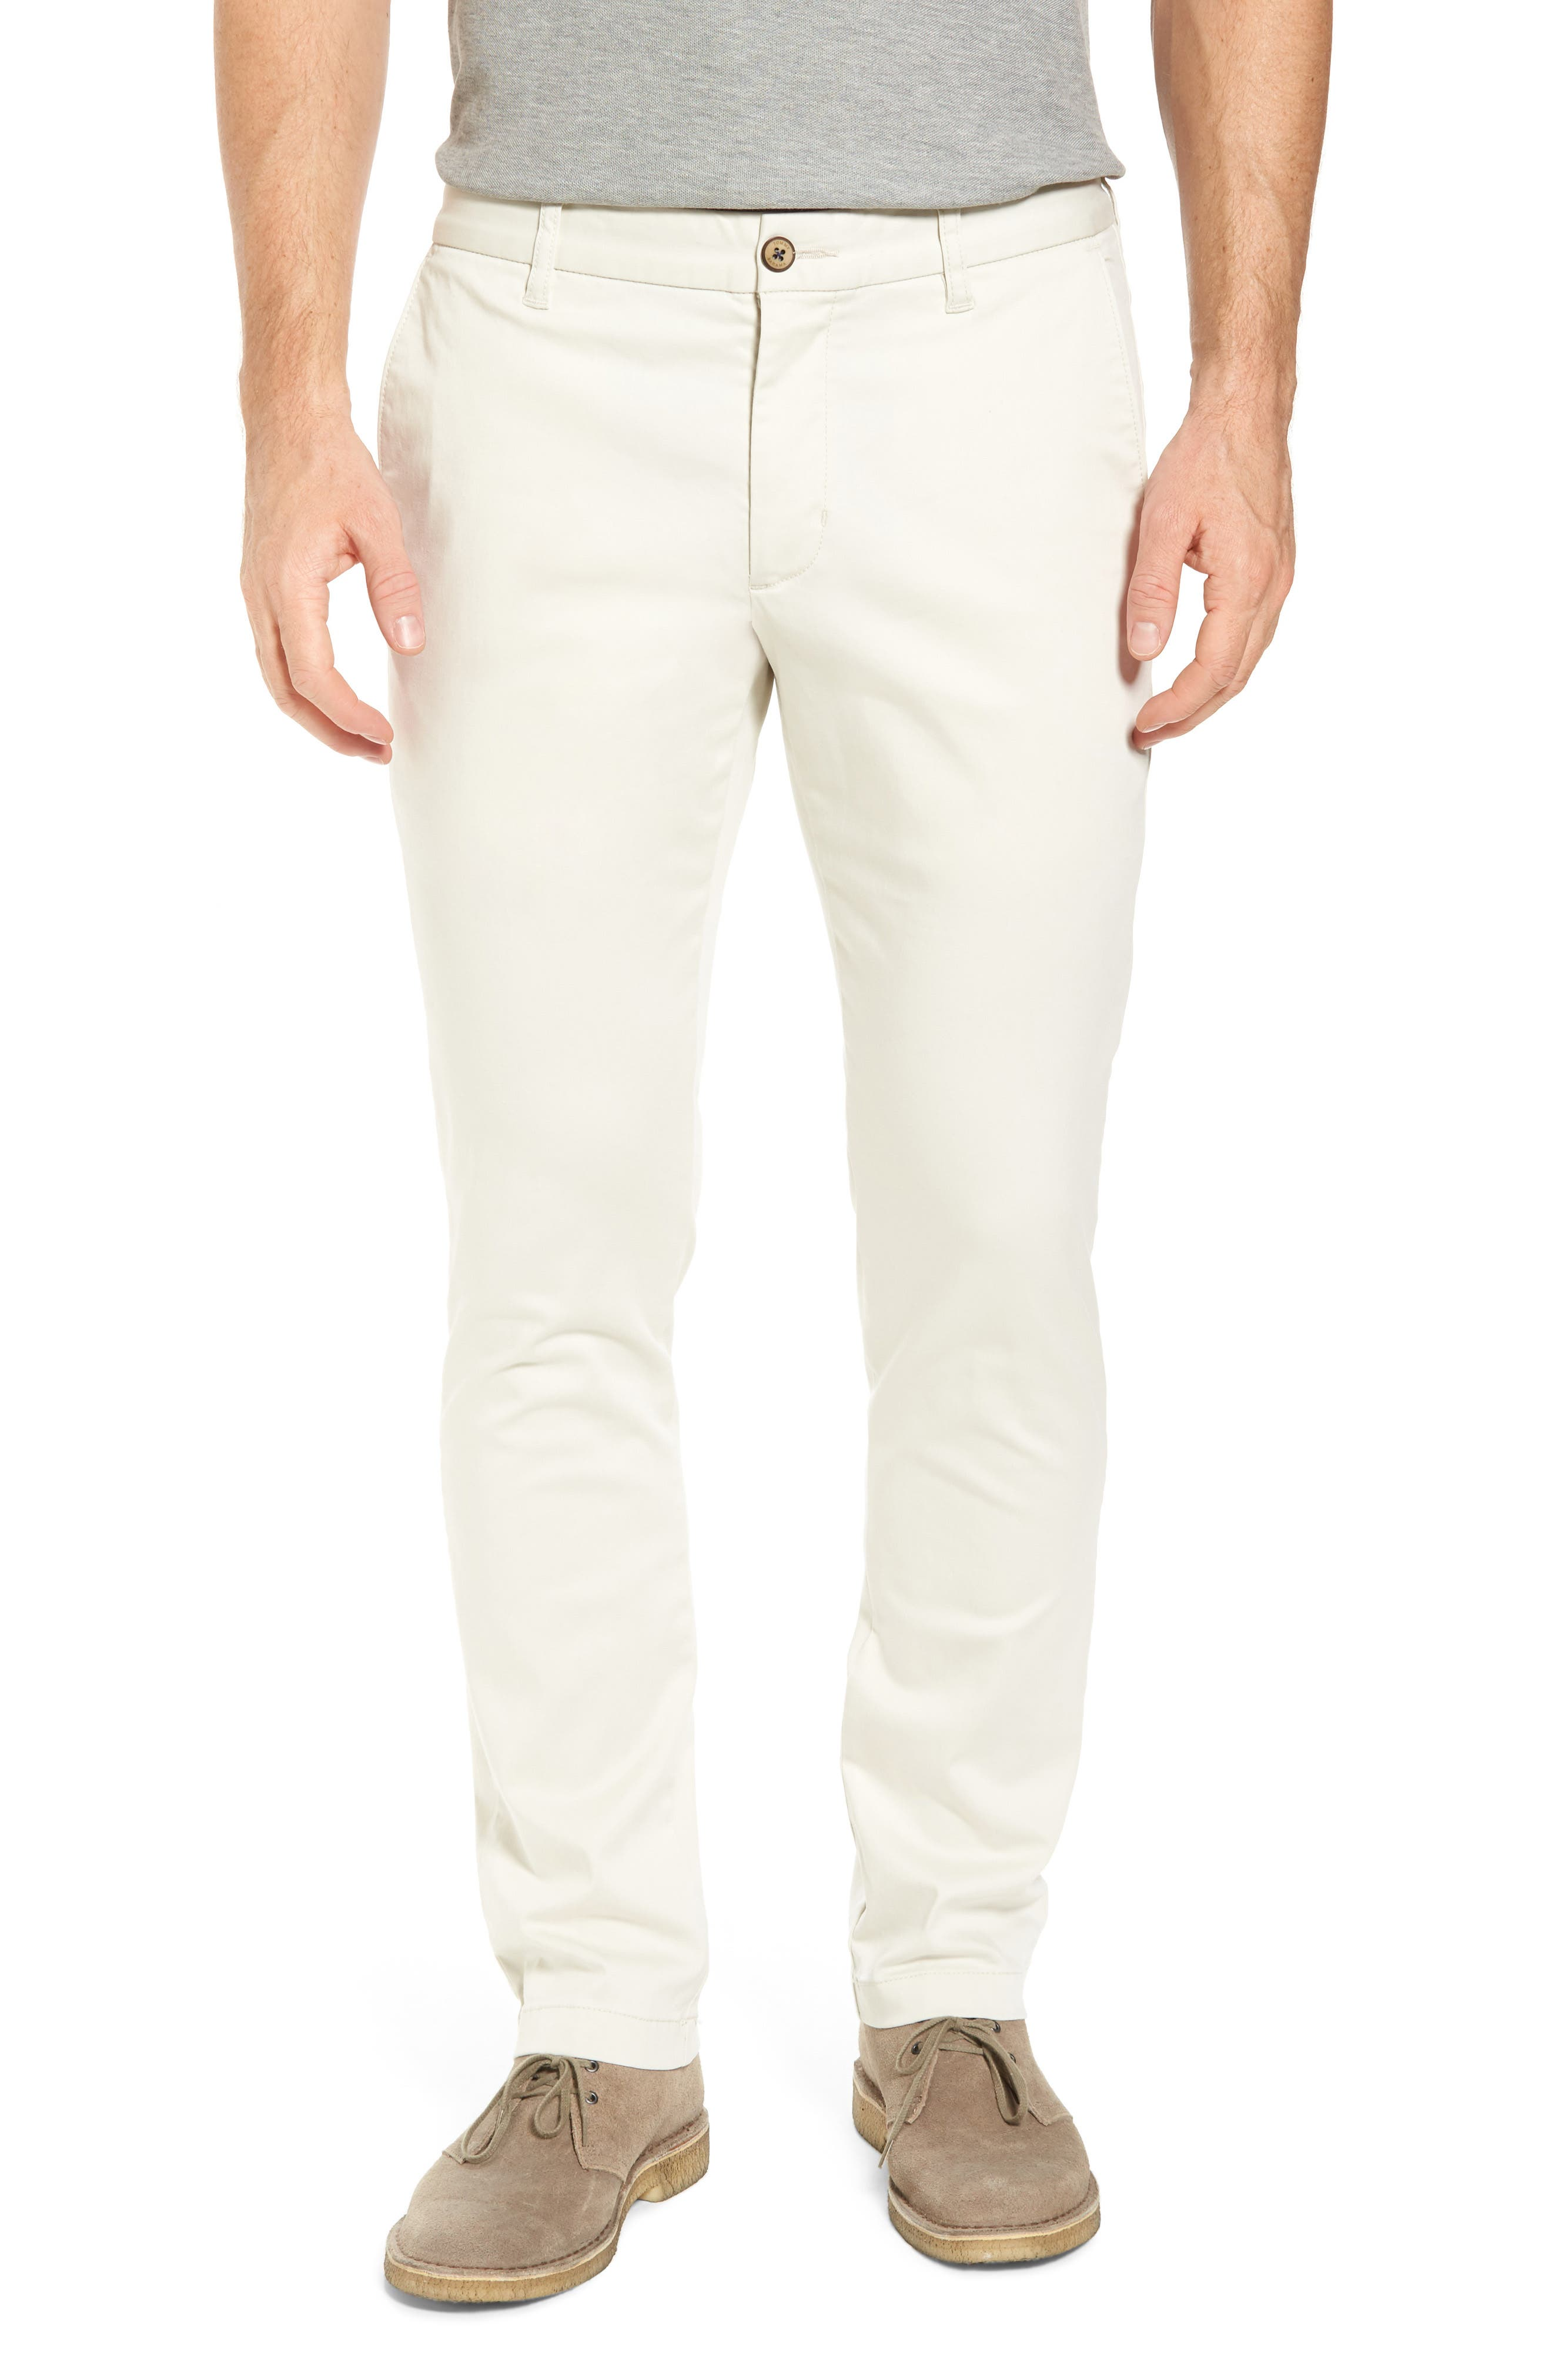 Alternate Image 1 Selected - Tommy Bahama Boracay Flat Front Pants